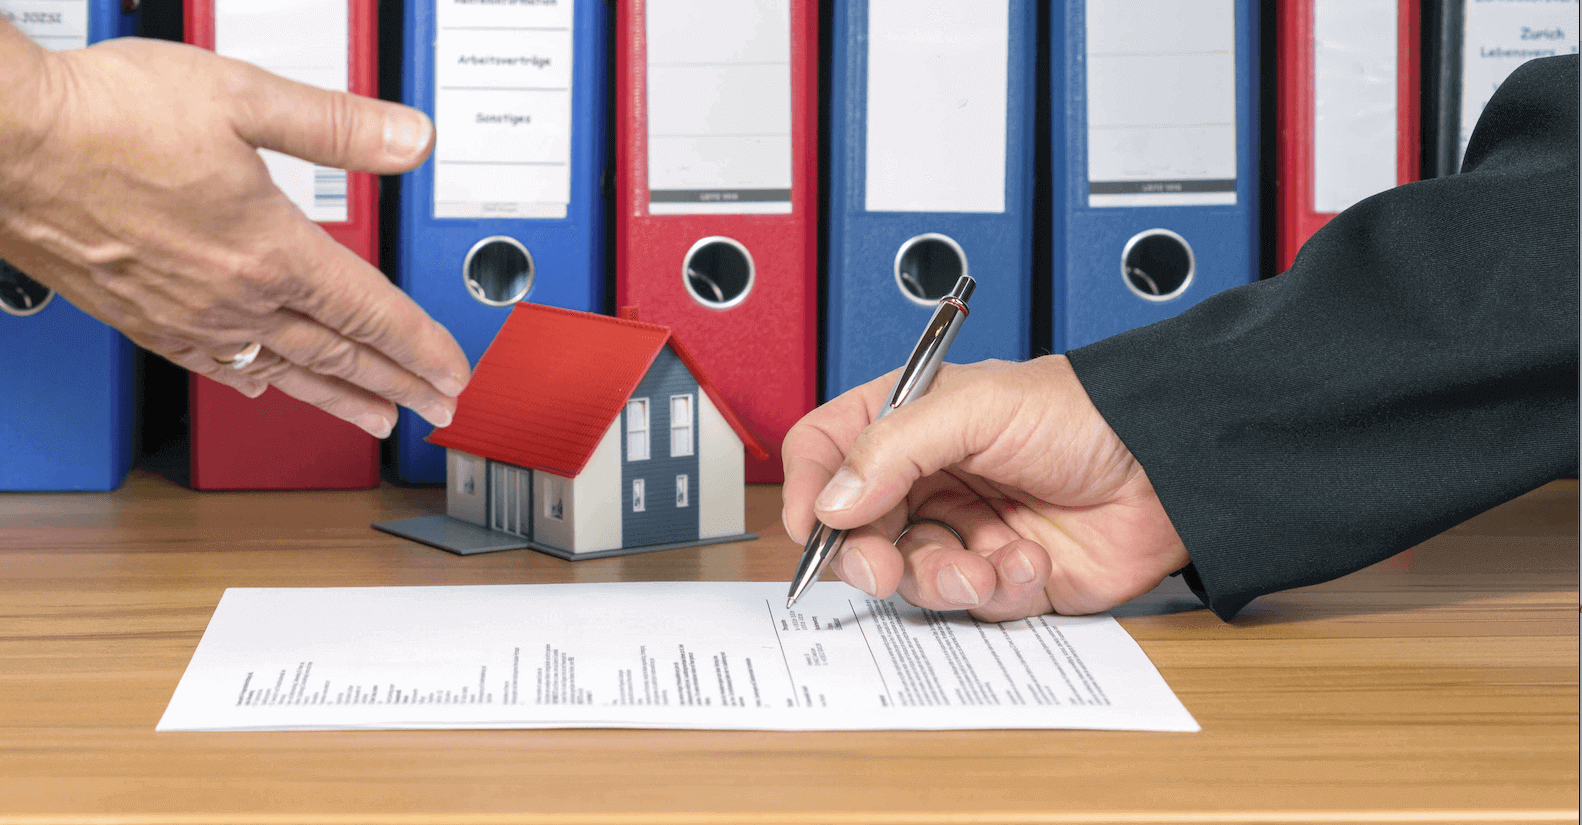 7 Strategies to Build a Successful Property Portfolio From Scratch